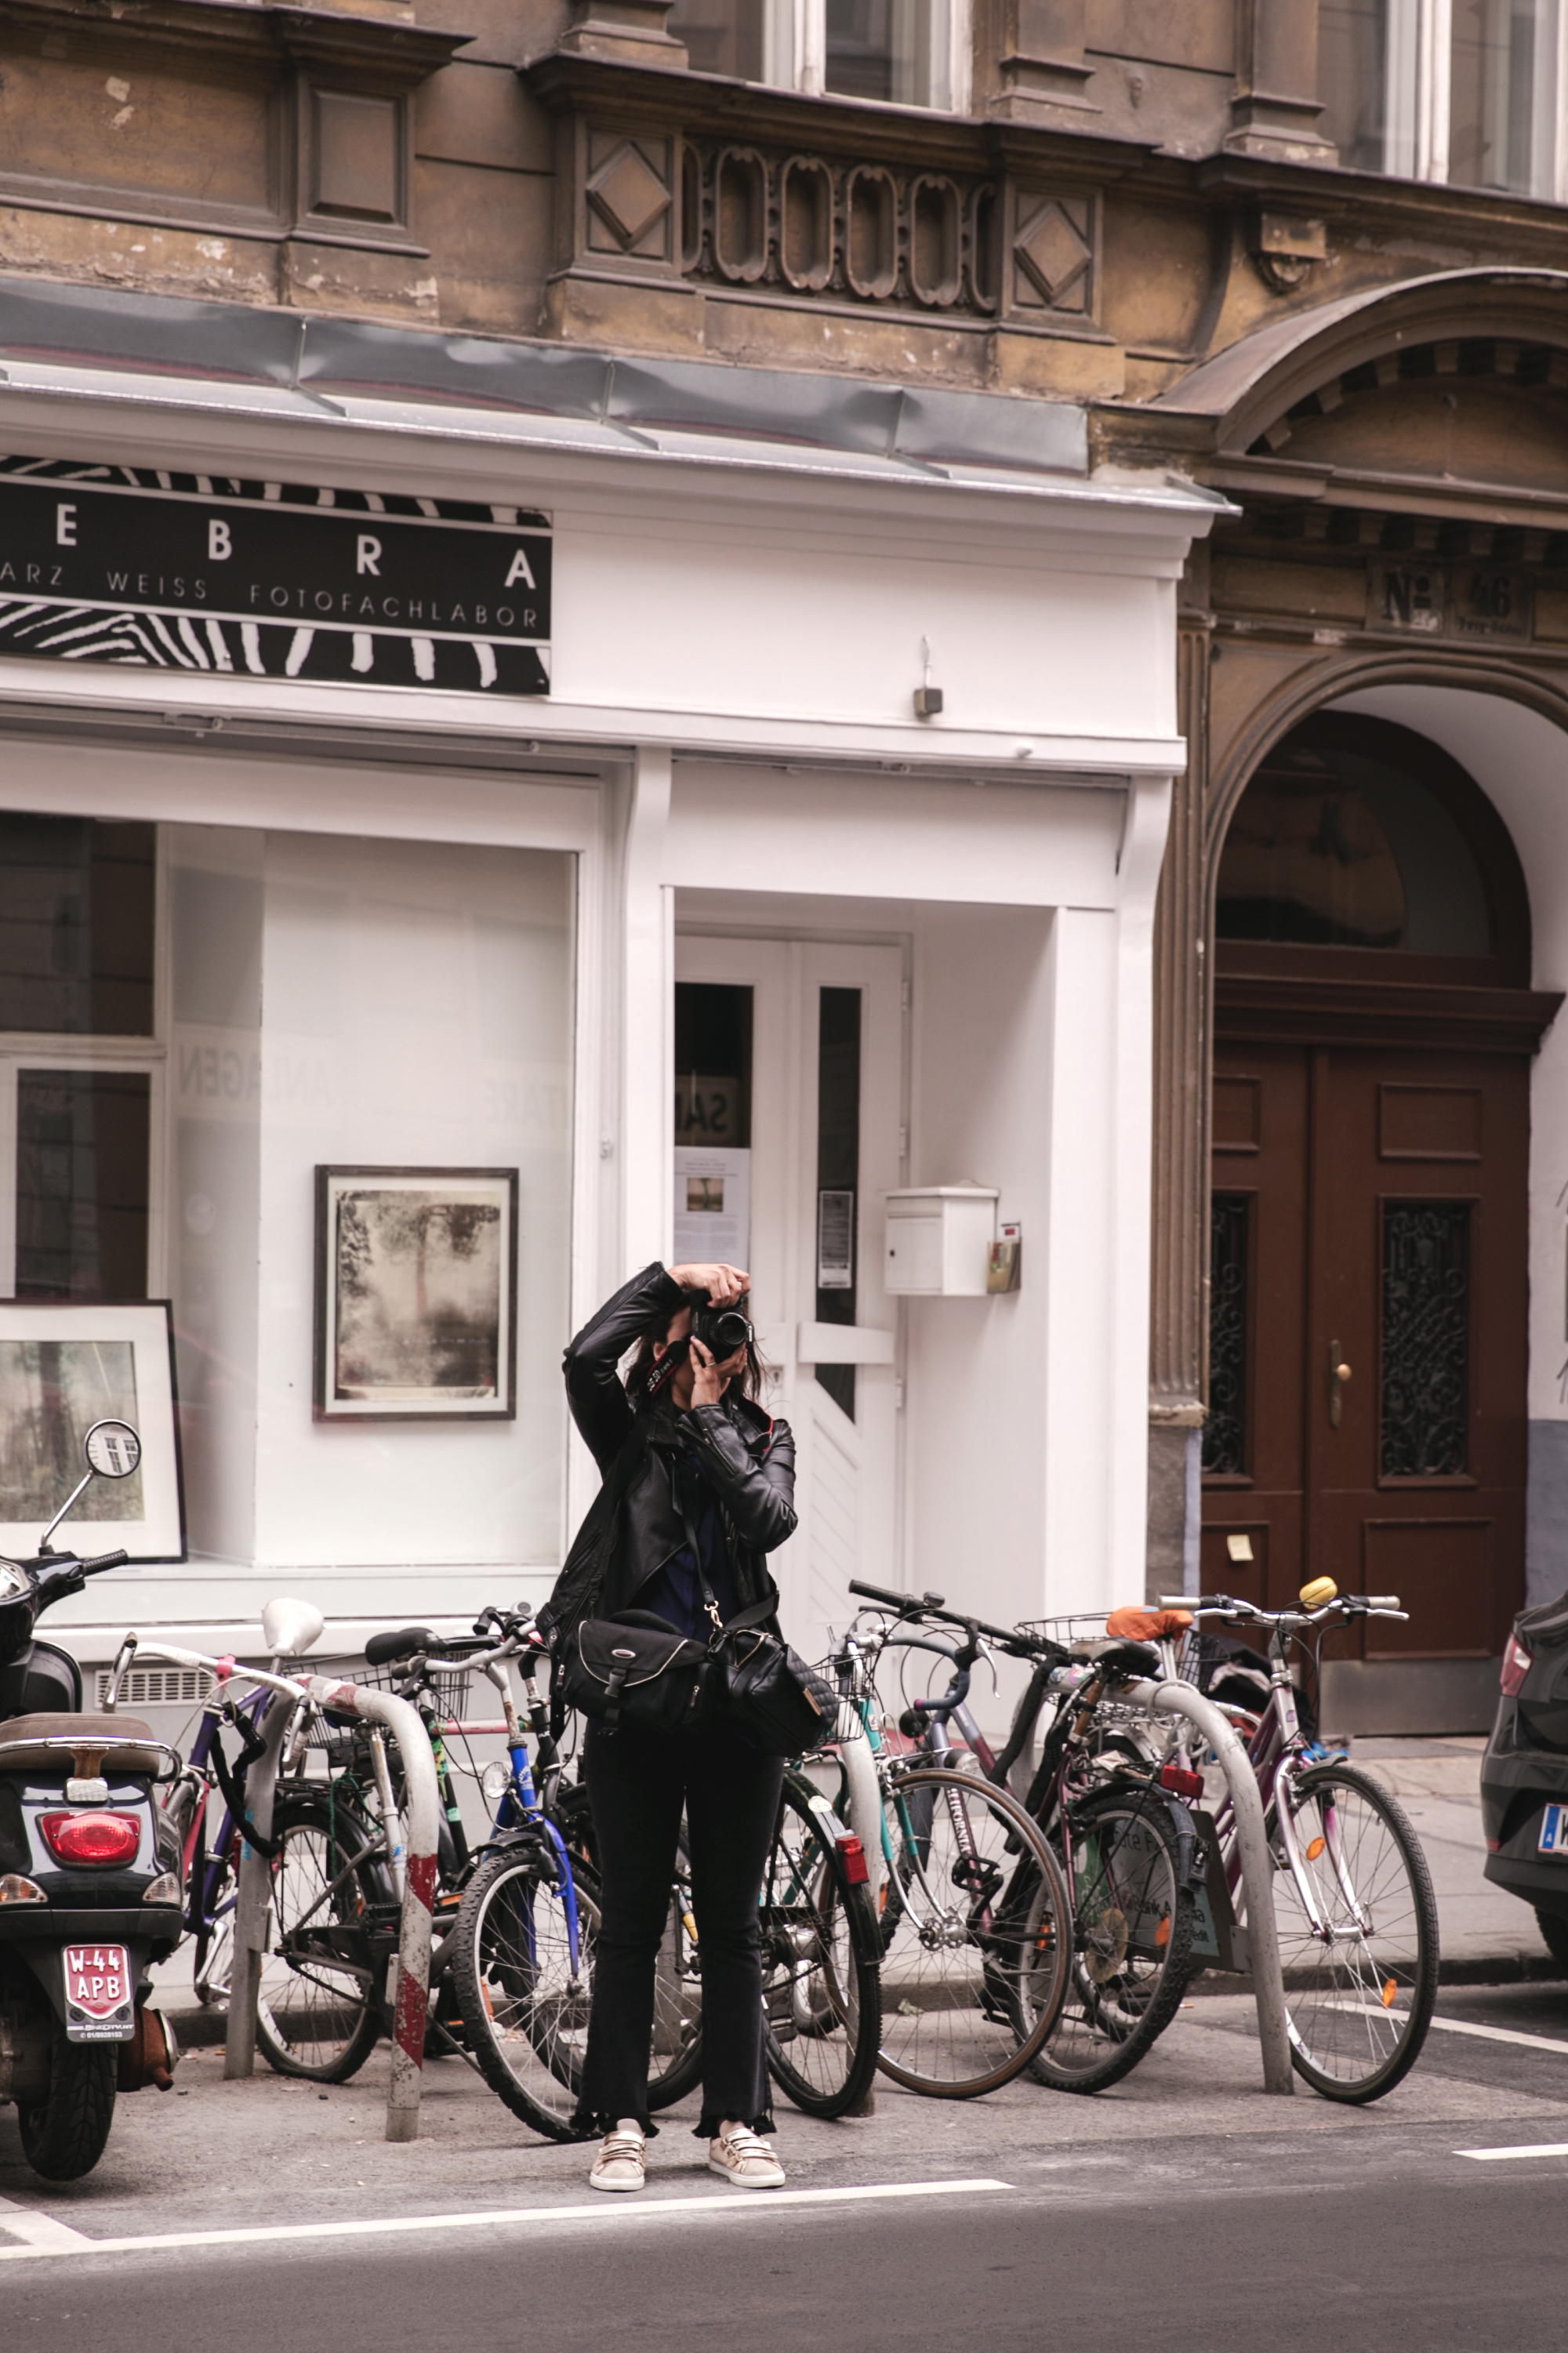 Boubouteatime-Vienna-city-guide-2